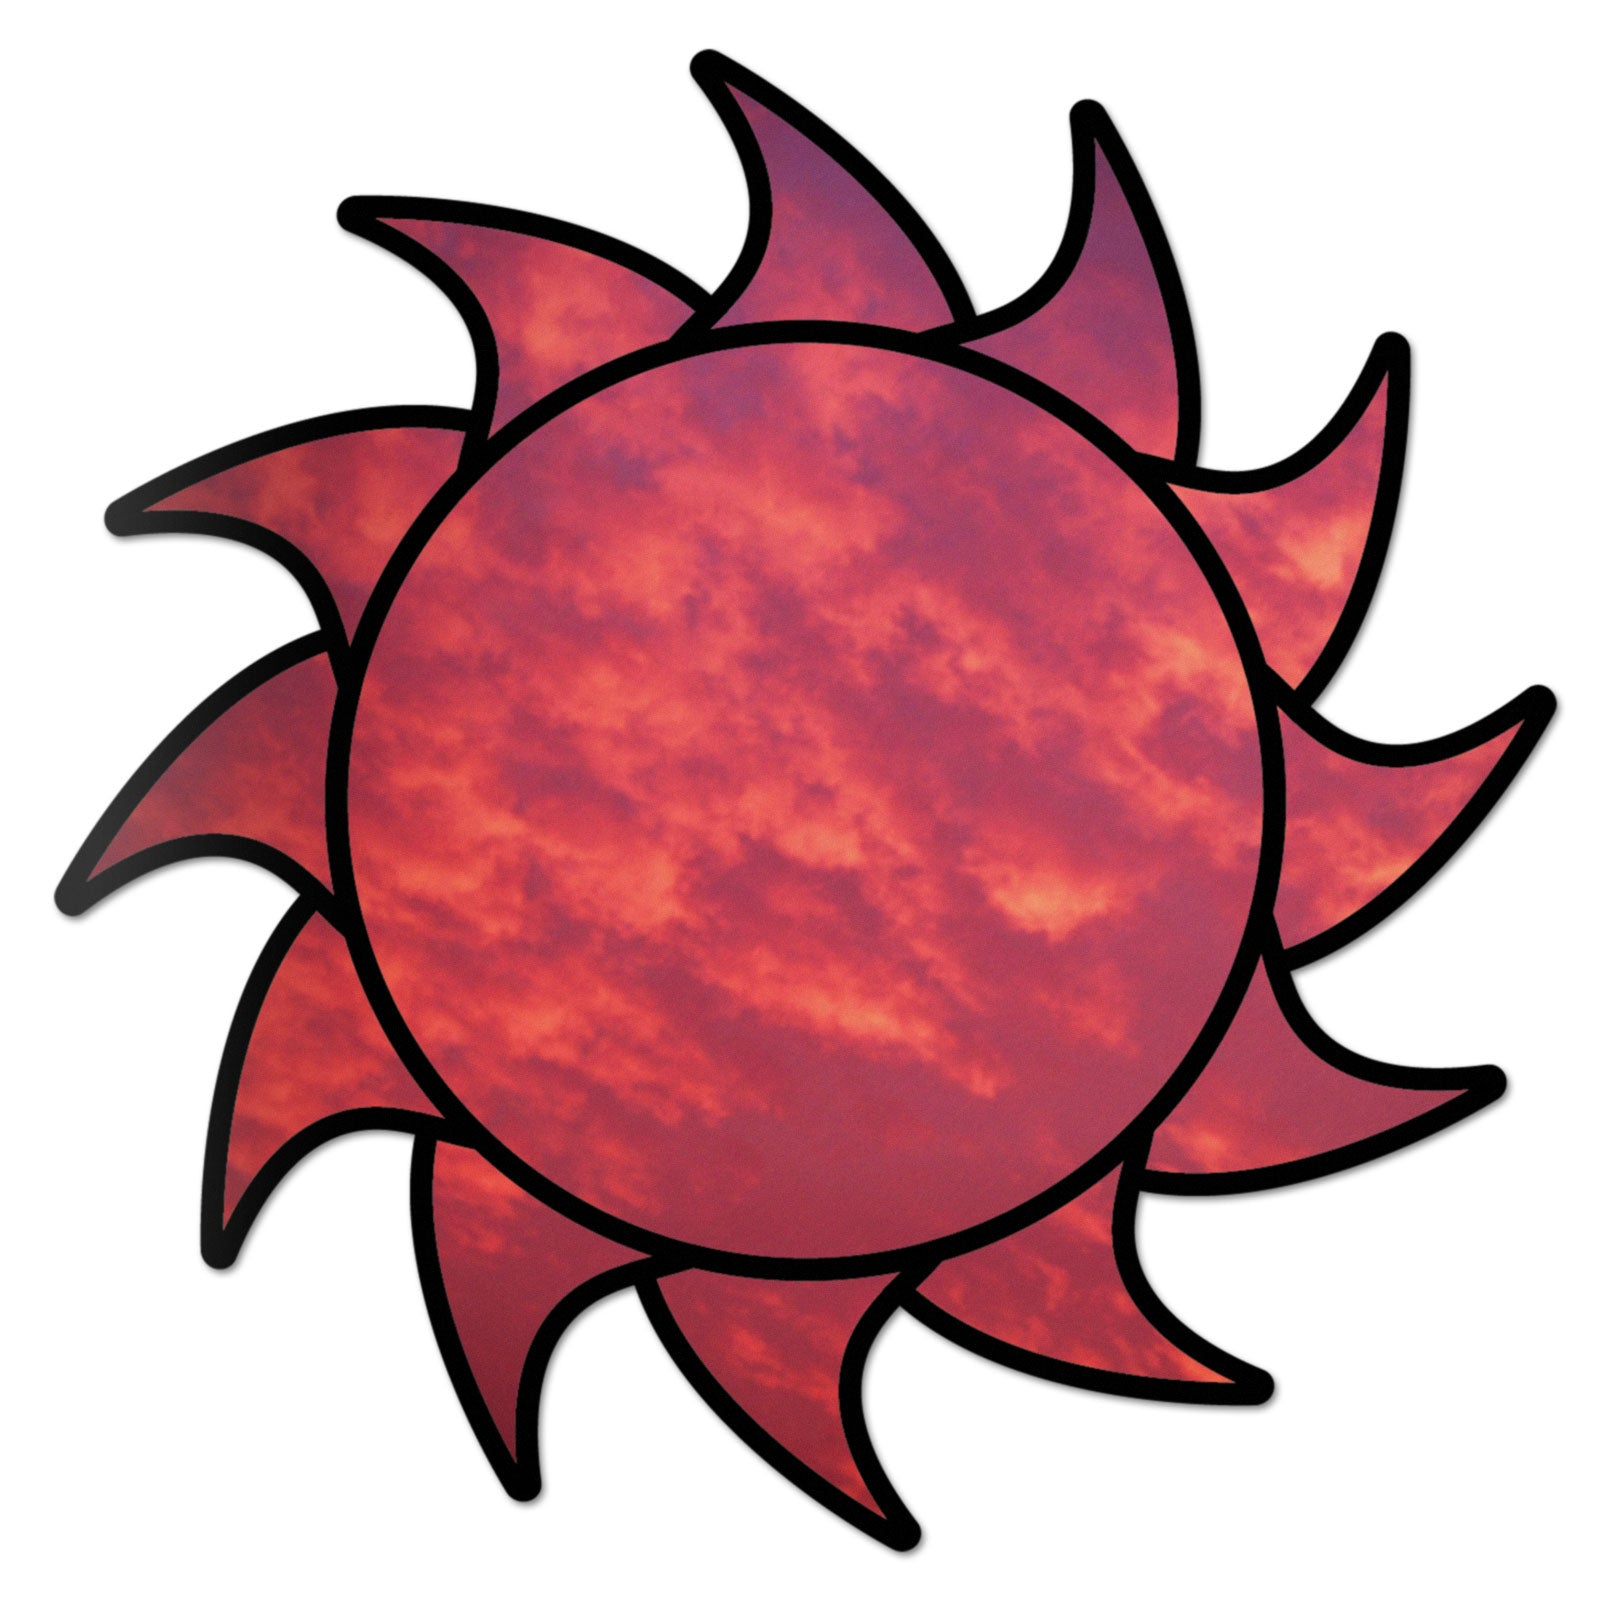 Sun Decal Red Sky Sticker Vinyl Rear Window Car Truck Laptop Sun Travel Mug Water and Fade Resistant 2.5 Inches